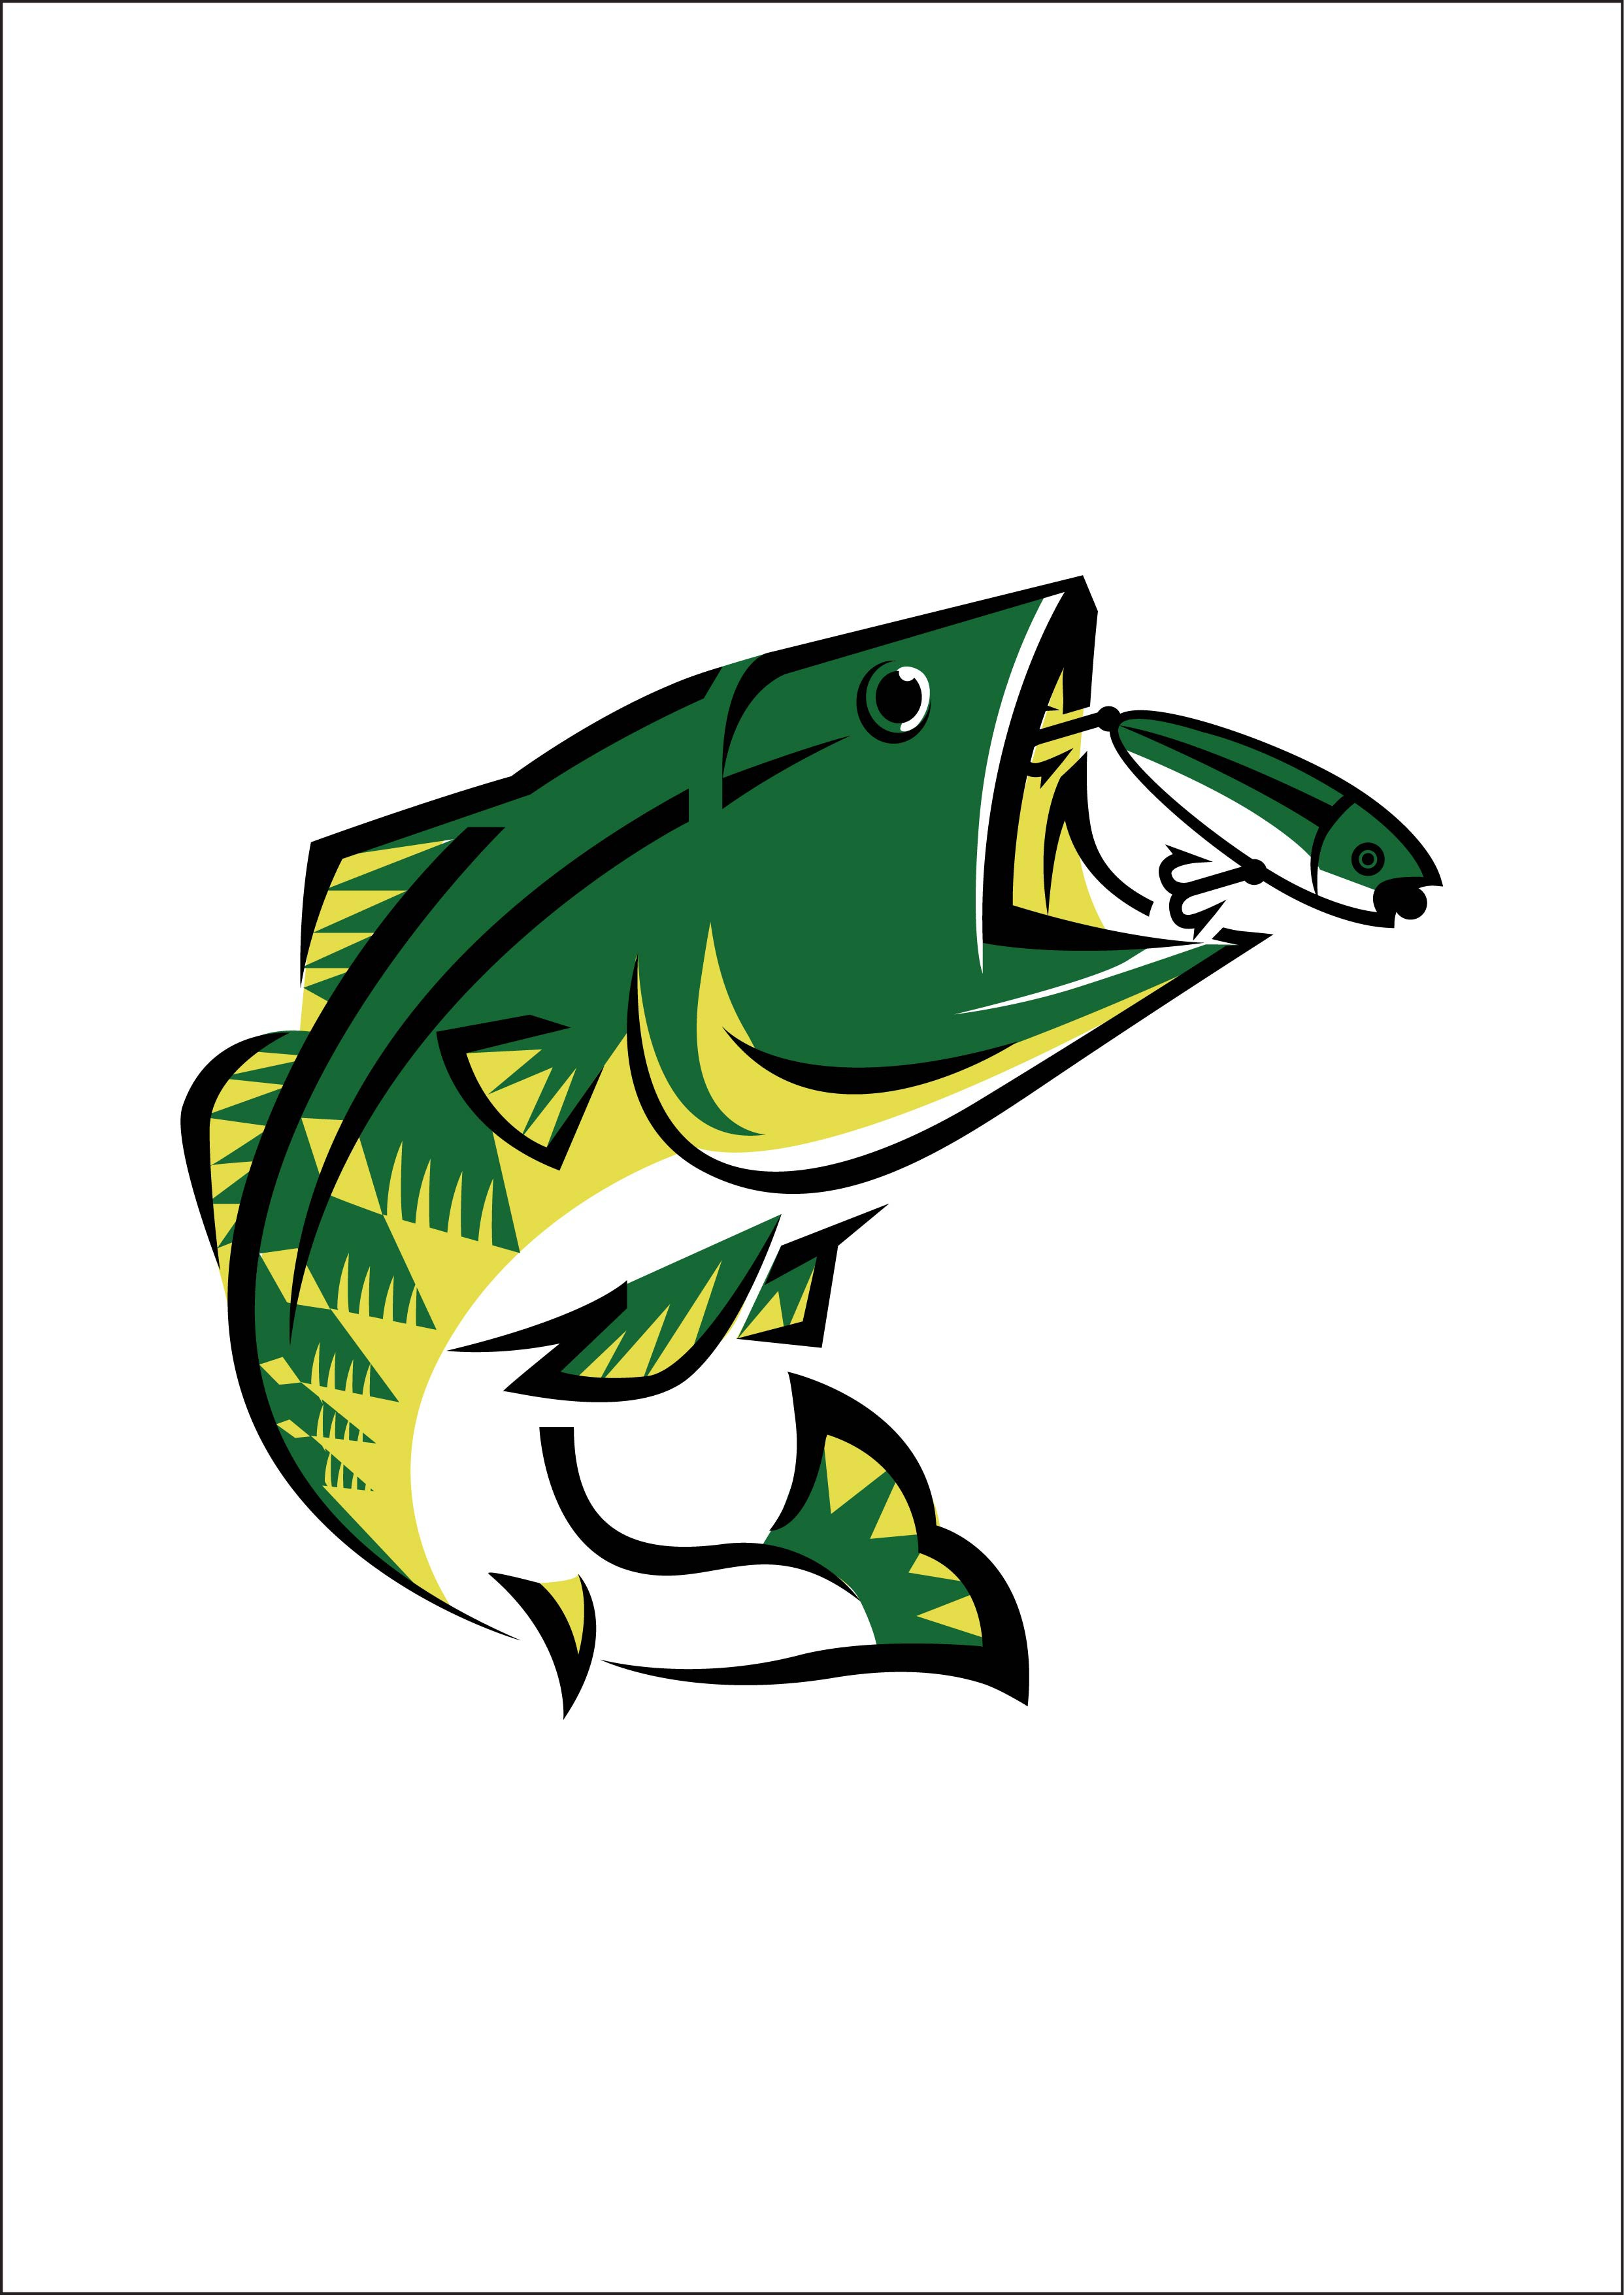 Help us look awesome and a little bigger than we are! Bass fishing tackle distributor named Lunkerbrag